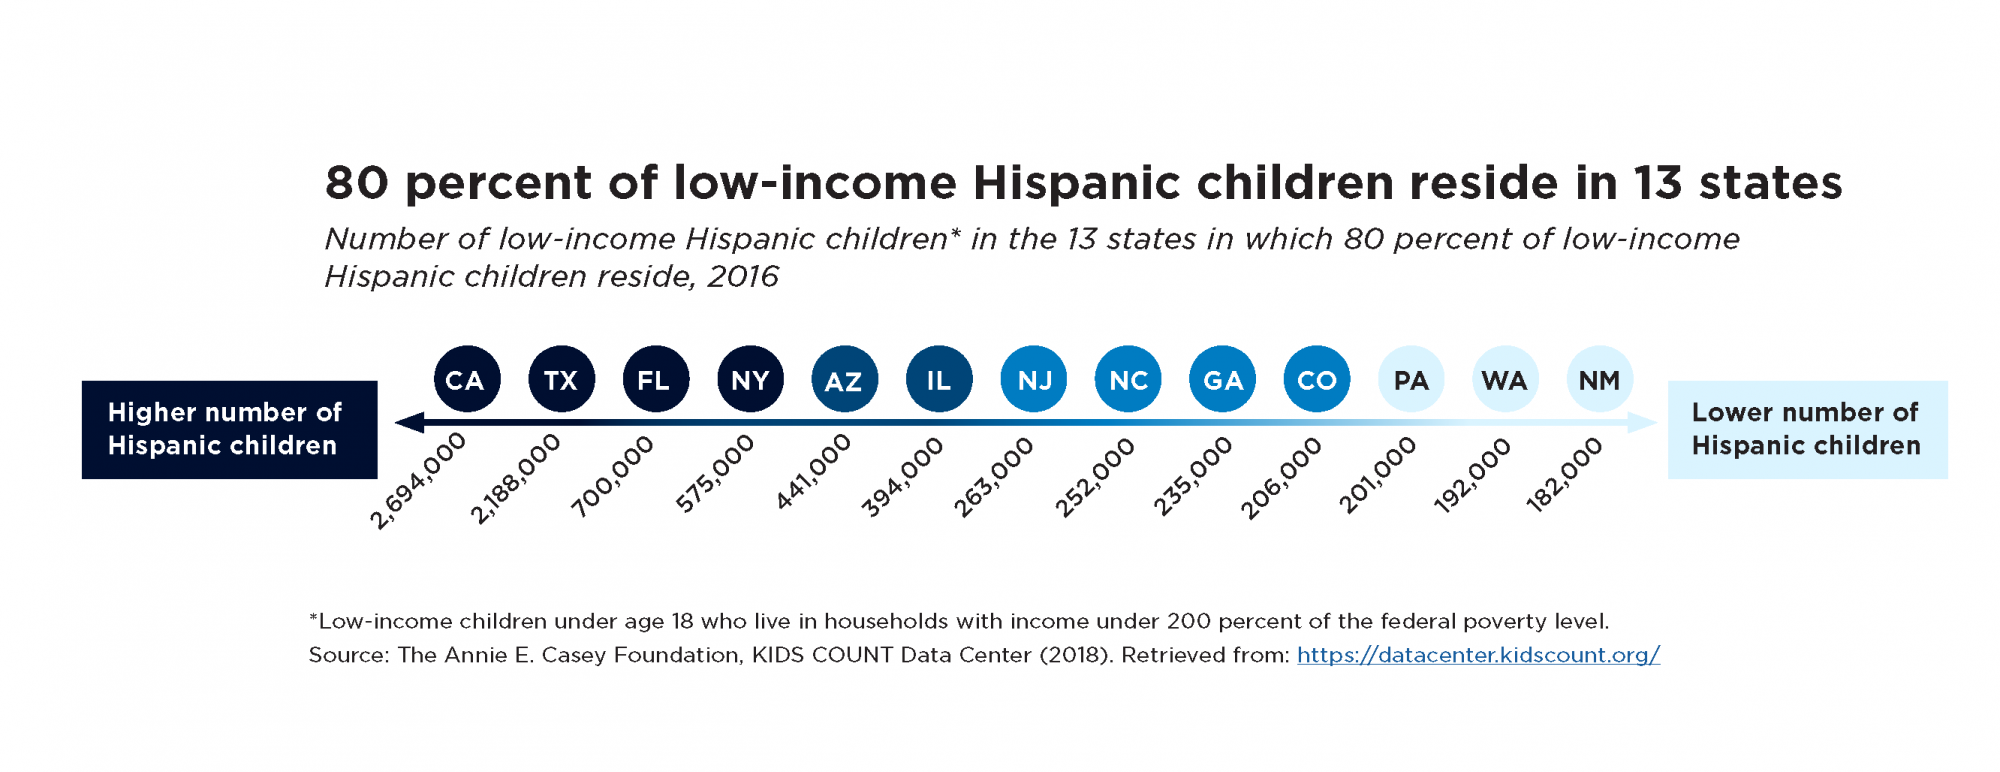 80 percent of low-income Hispanic children reside in 13 states